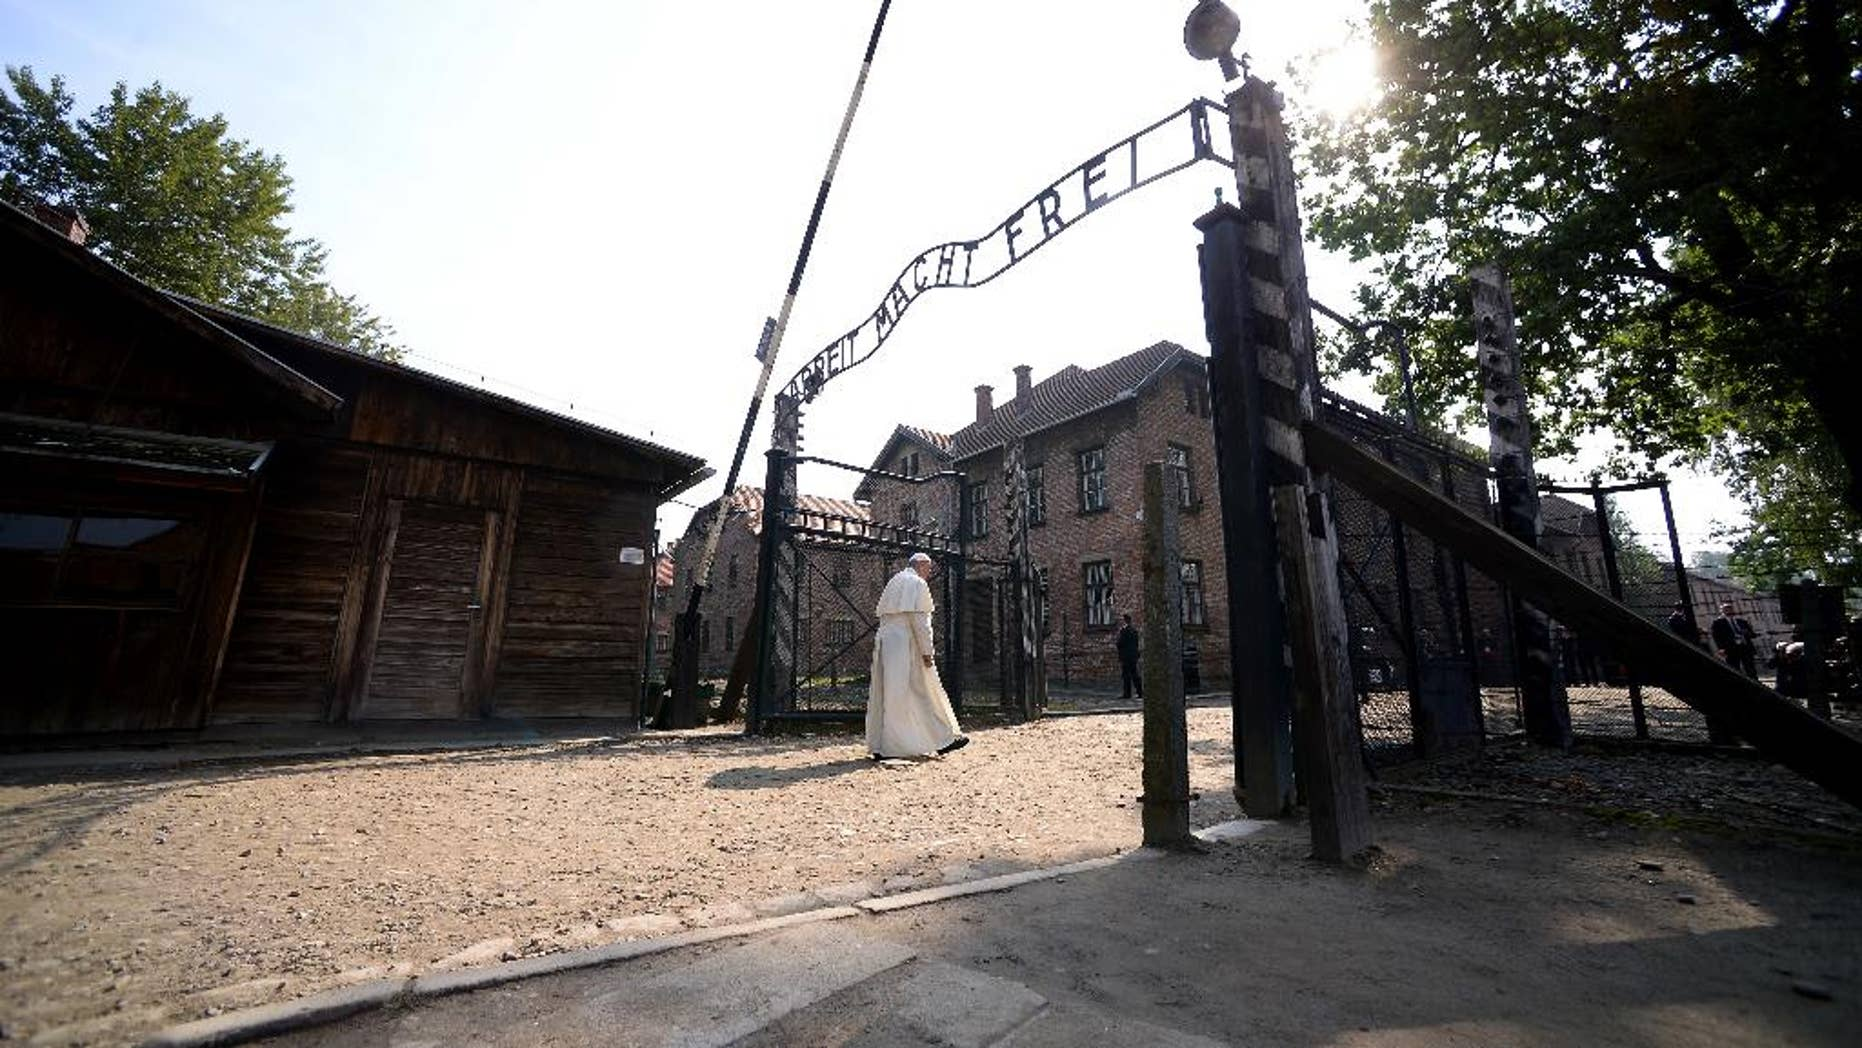 Pope Francis walks through the gate of the former Nazi German death camp of Auschwitz in Oswiecim, Poland, Friday, July 29, 2016.  Pope Francis paid a somber visit to the Nazi German death camp of Auschwitz-Birkenau Friday, becoming the third consecutive pontiff to make the pilgrimage to the place where Adolf Hitler's forces killed more than 1 million people, most of them Jews. (Filippo Monteforte/Pool Photo via AP)